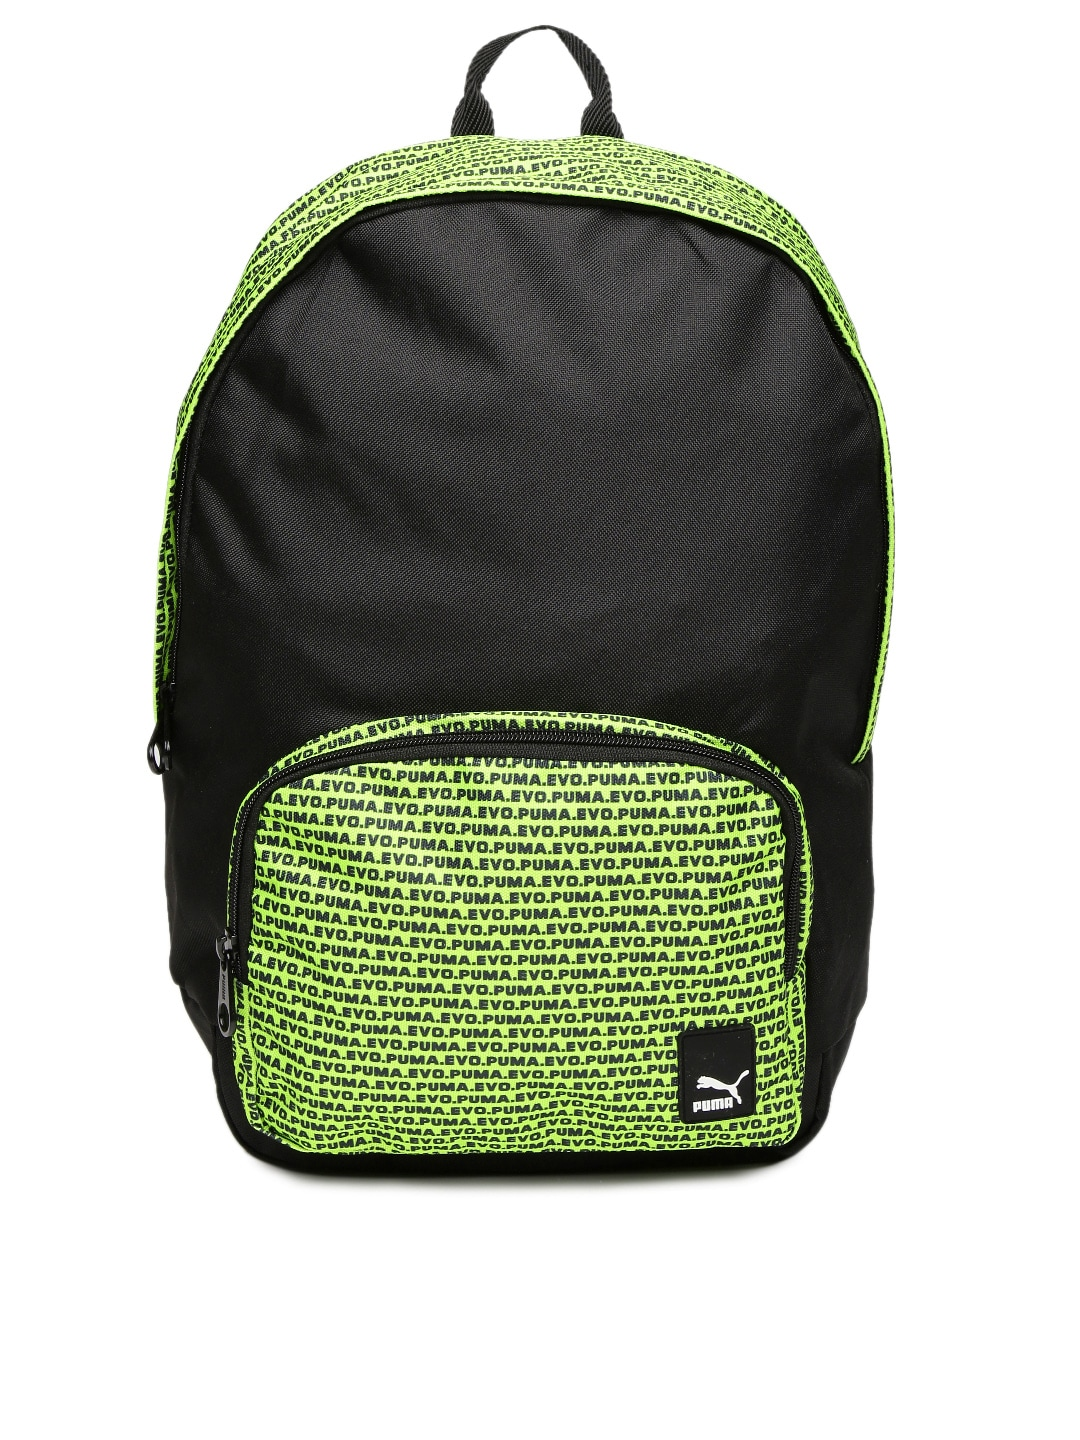 Puma Backpacks - Buy Puma Backpack For Men   Women Online  fe1ee0eb68156